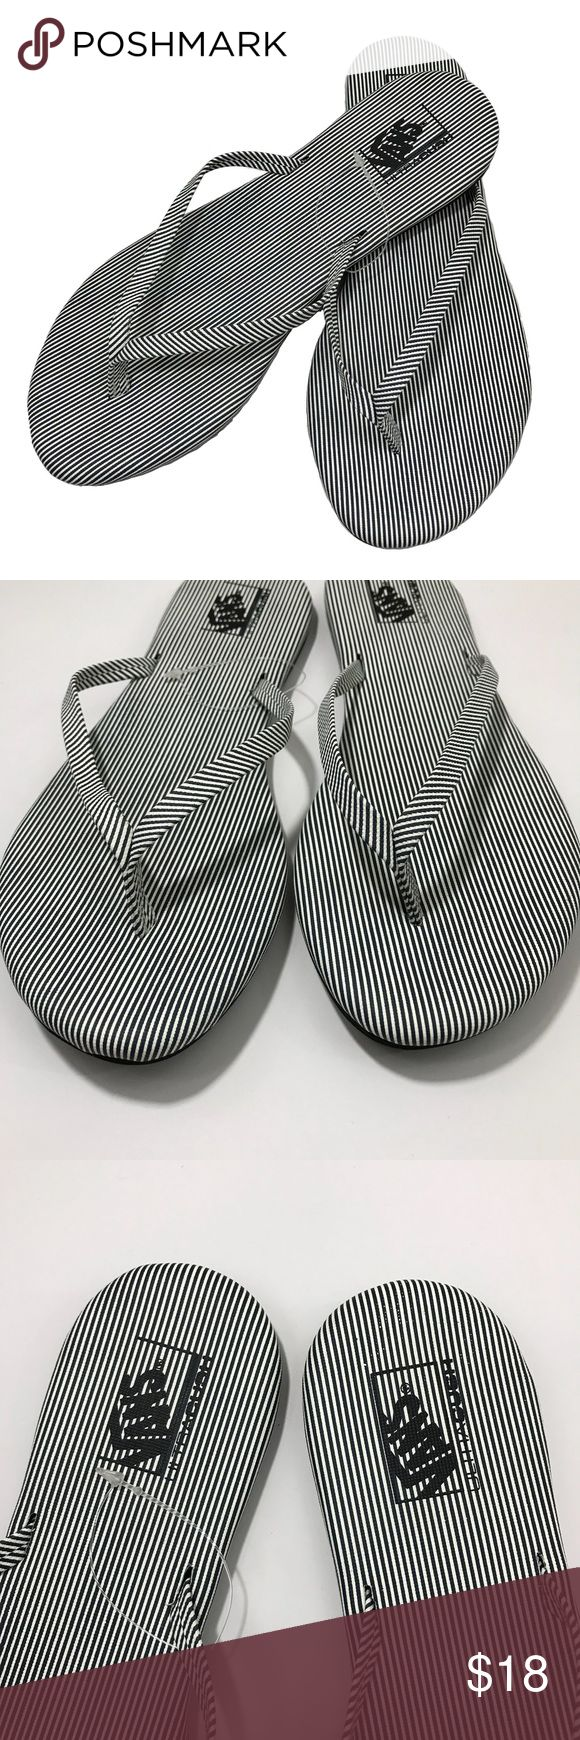 NWOT Vans Black White Striped Flip Flops 7 Vans flip flops/slippers sz 7. Black and white stripes. Synthetic upper, rubber outsole. NWOT - never worn. Vans Shoes Slippers